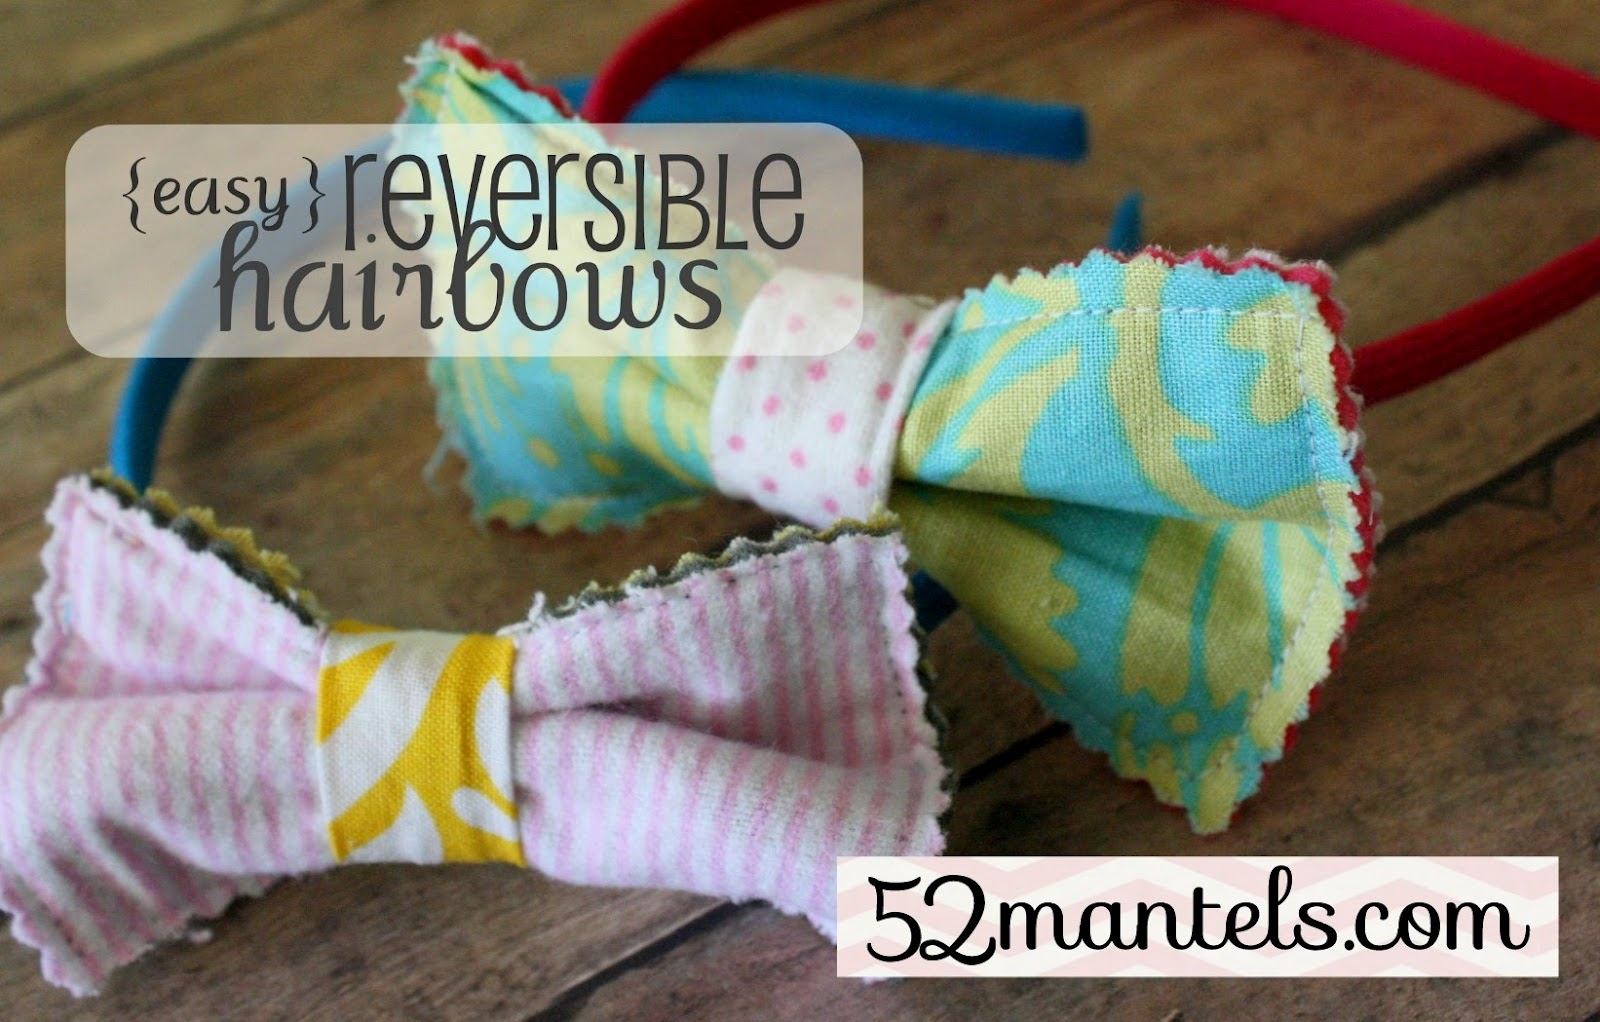 easy sewing projects for girls These sew-cute crafts are easy enough even for beginner sewers.